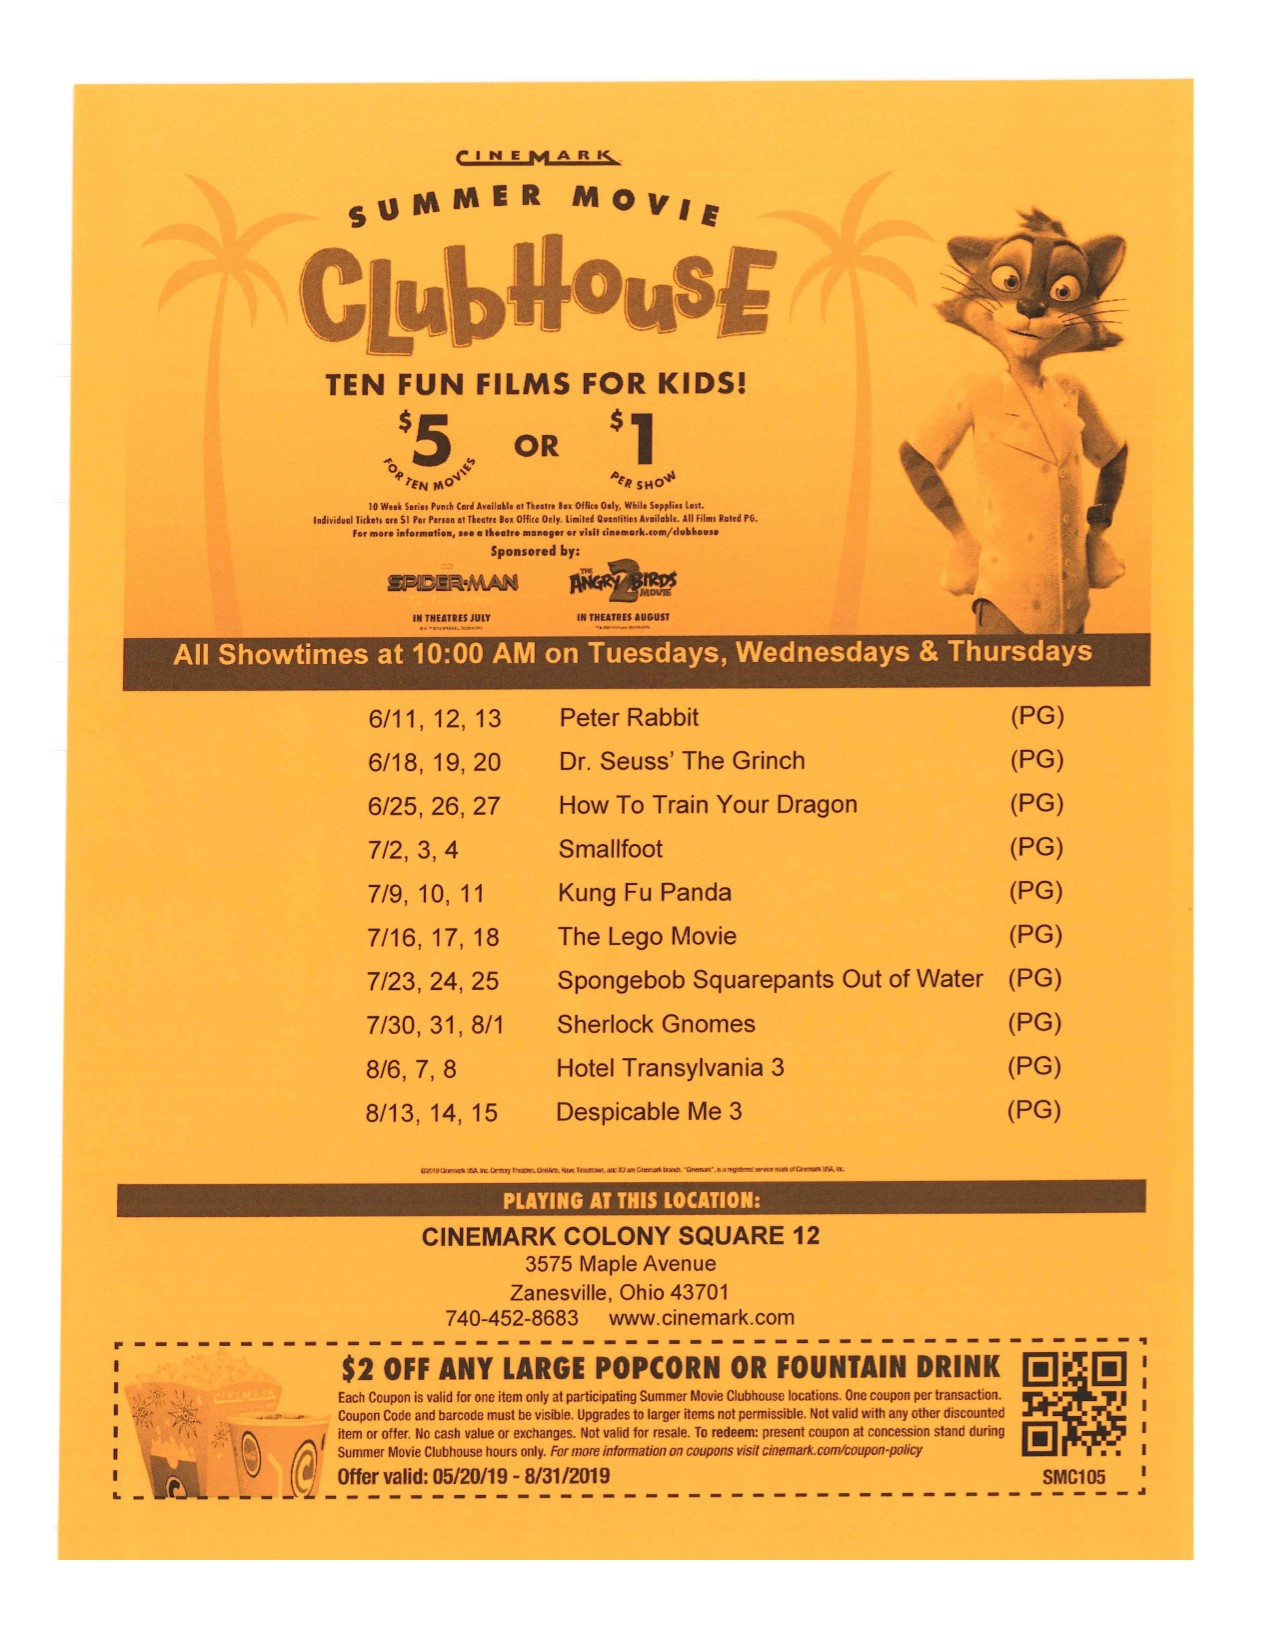 Colony Square Mall ::: Summer Movie Club House ::: Cinemark Theatres